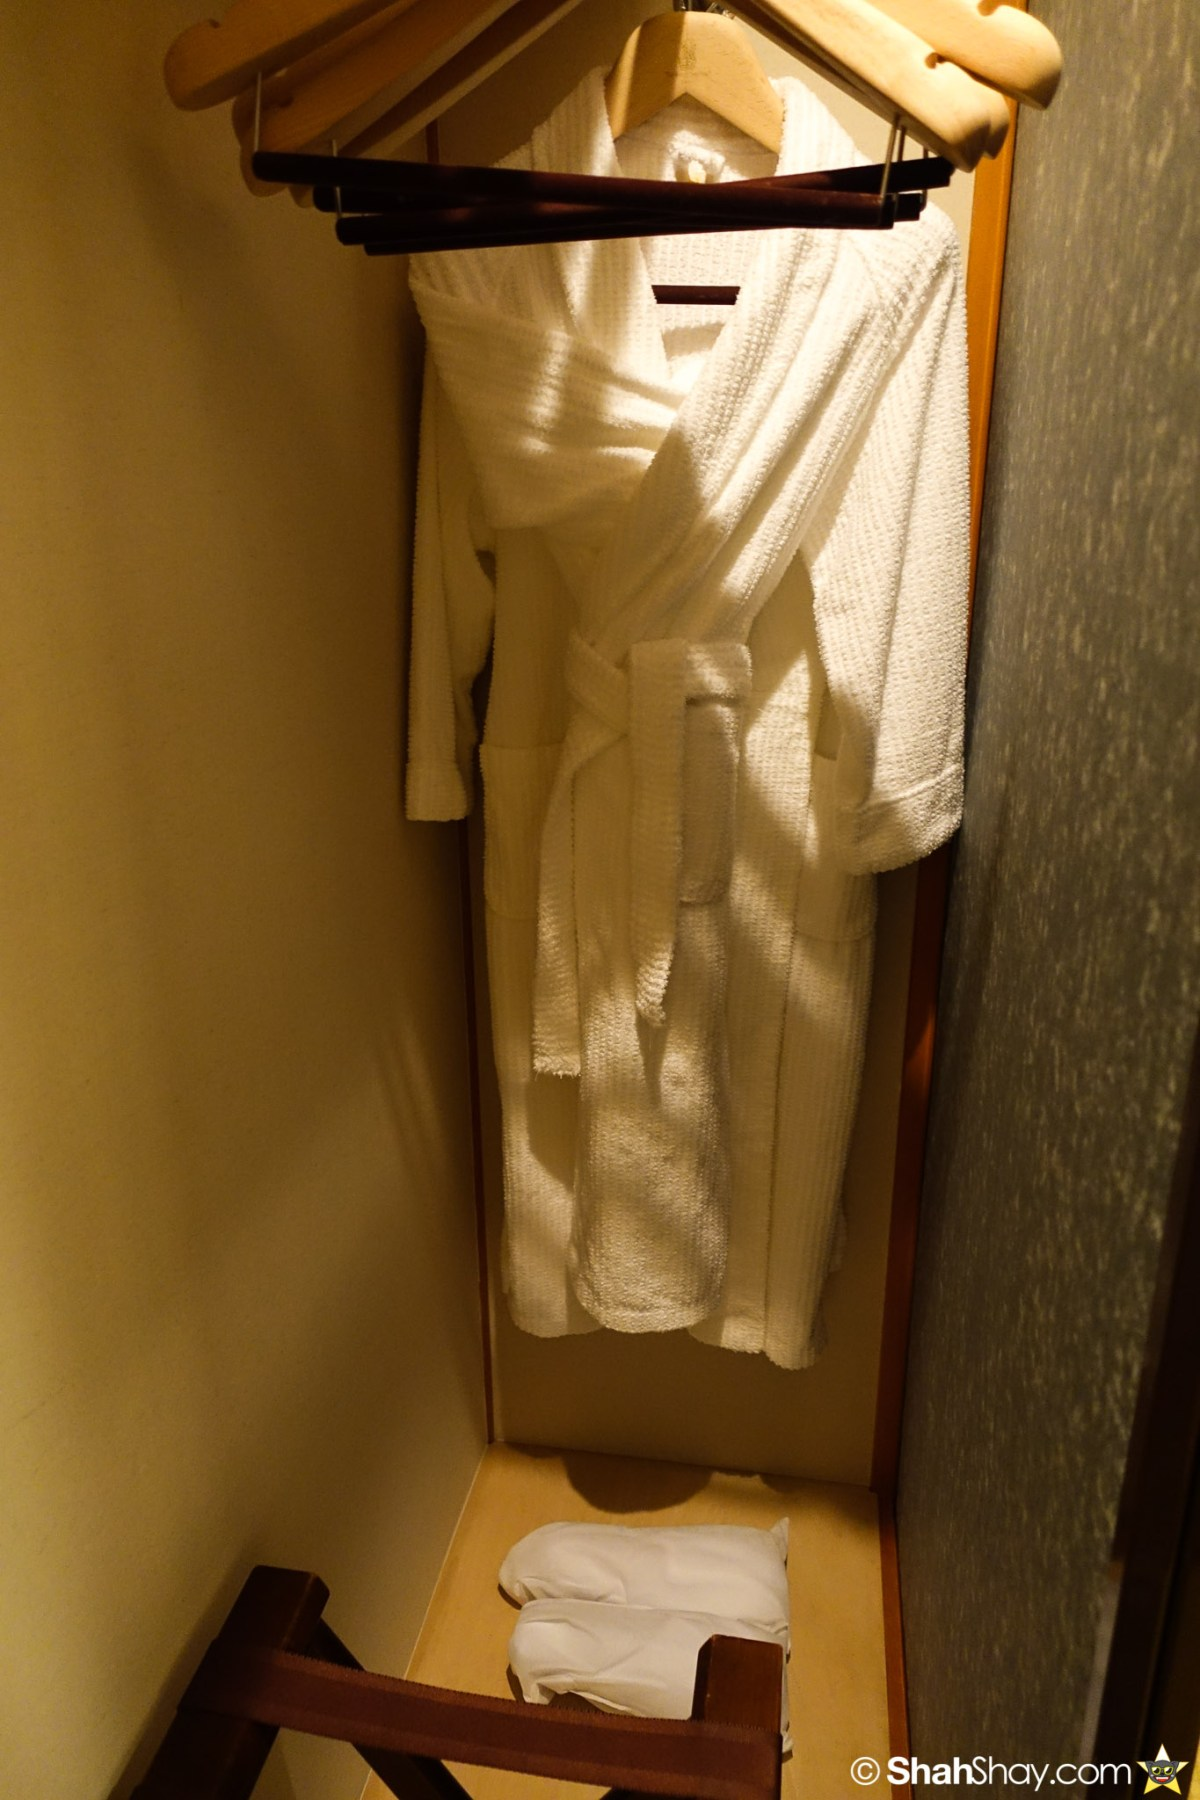 The Ritz-Carlton Tokyo Rooms - Modern Japanese Suite - Robes and Slippers